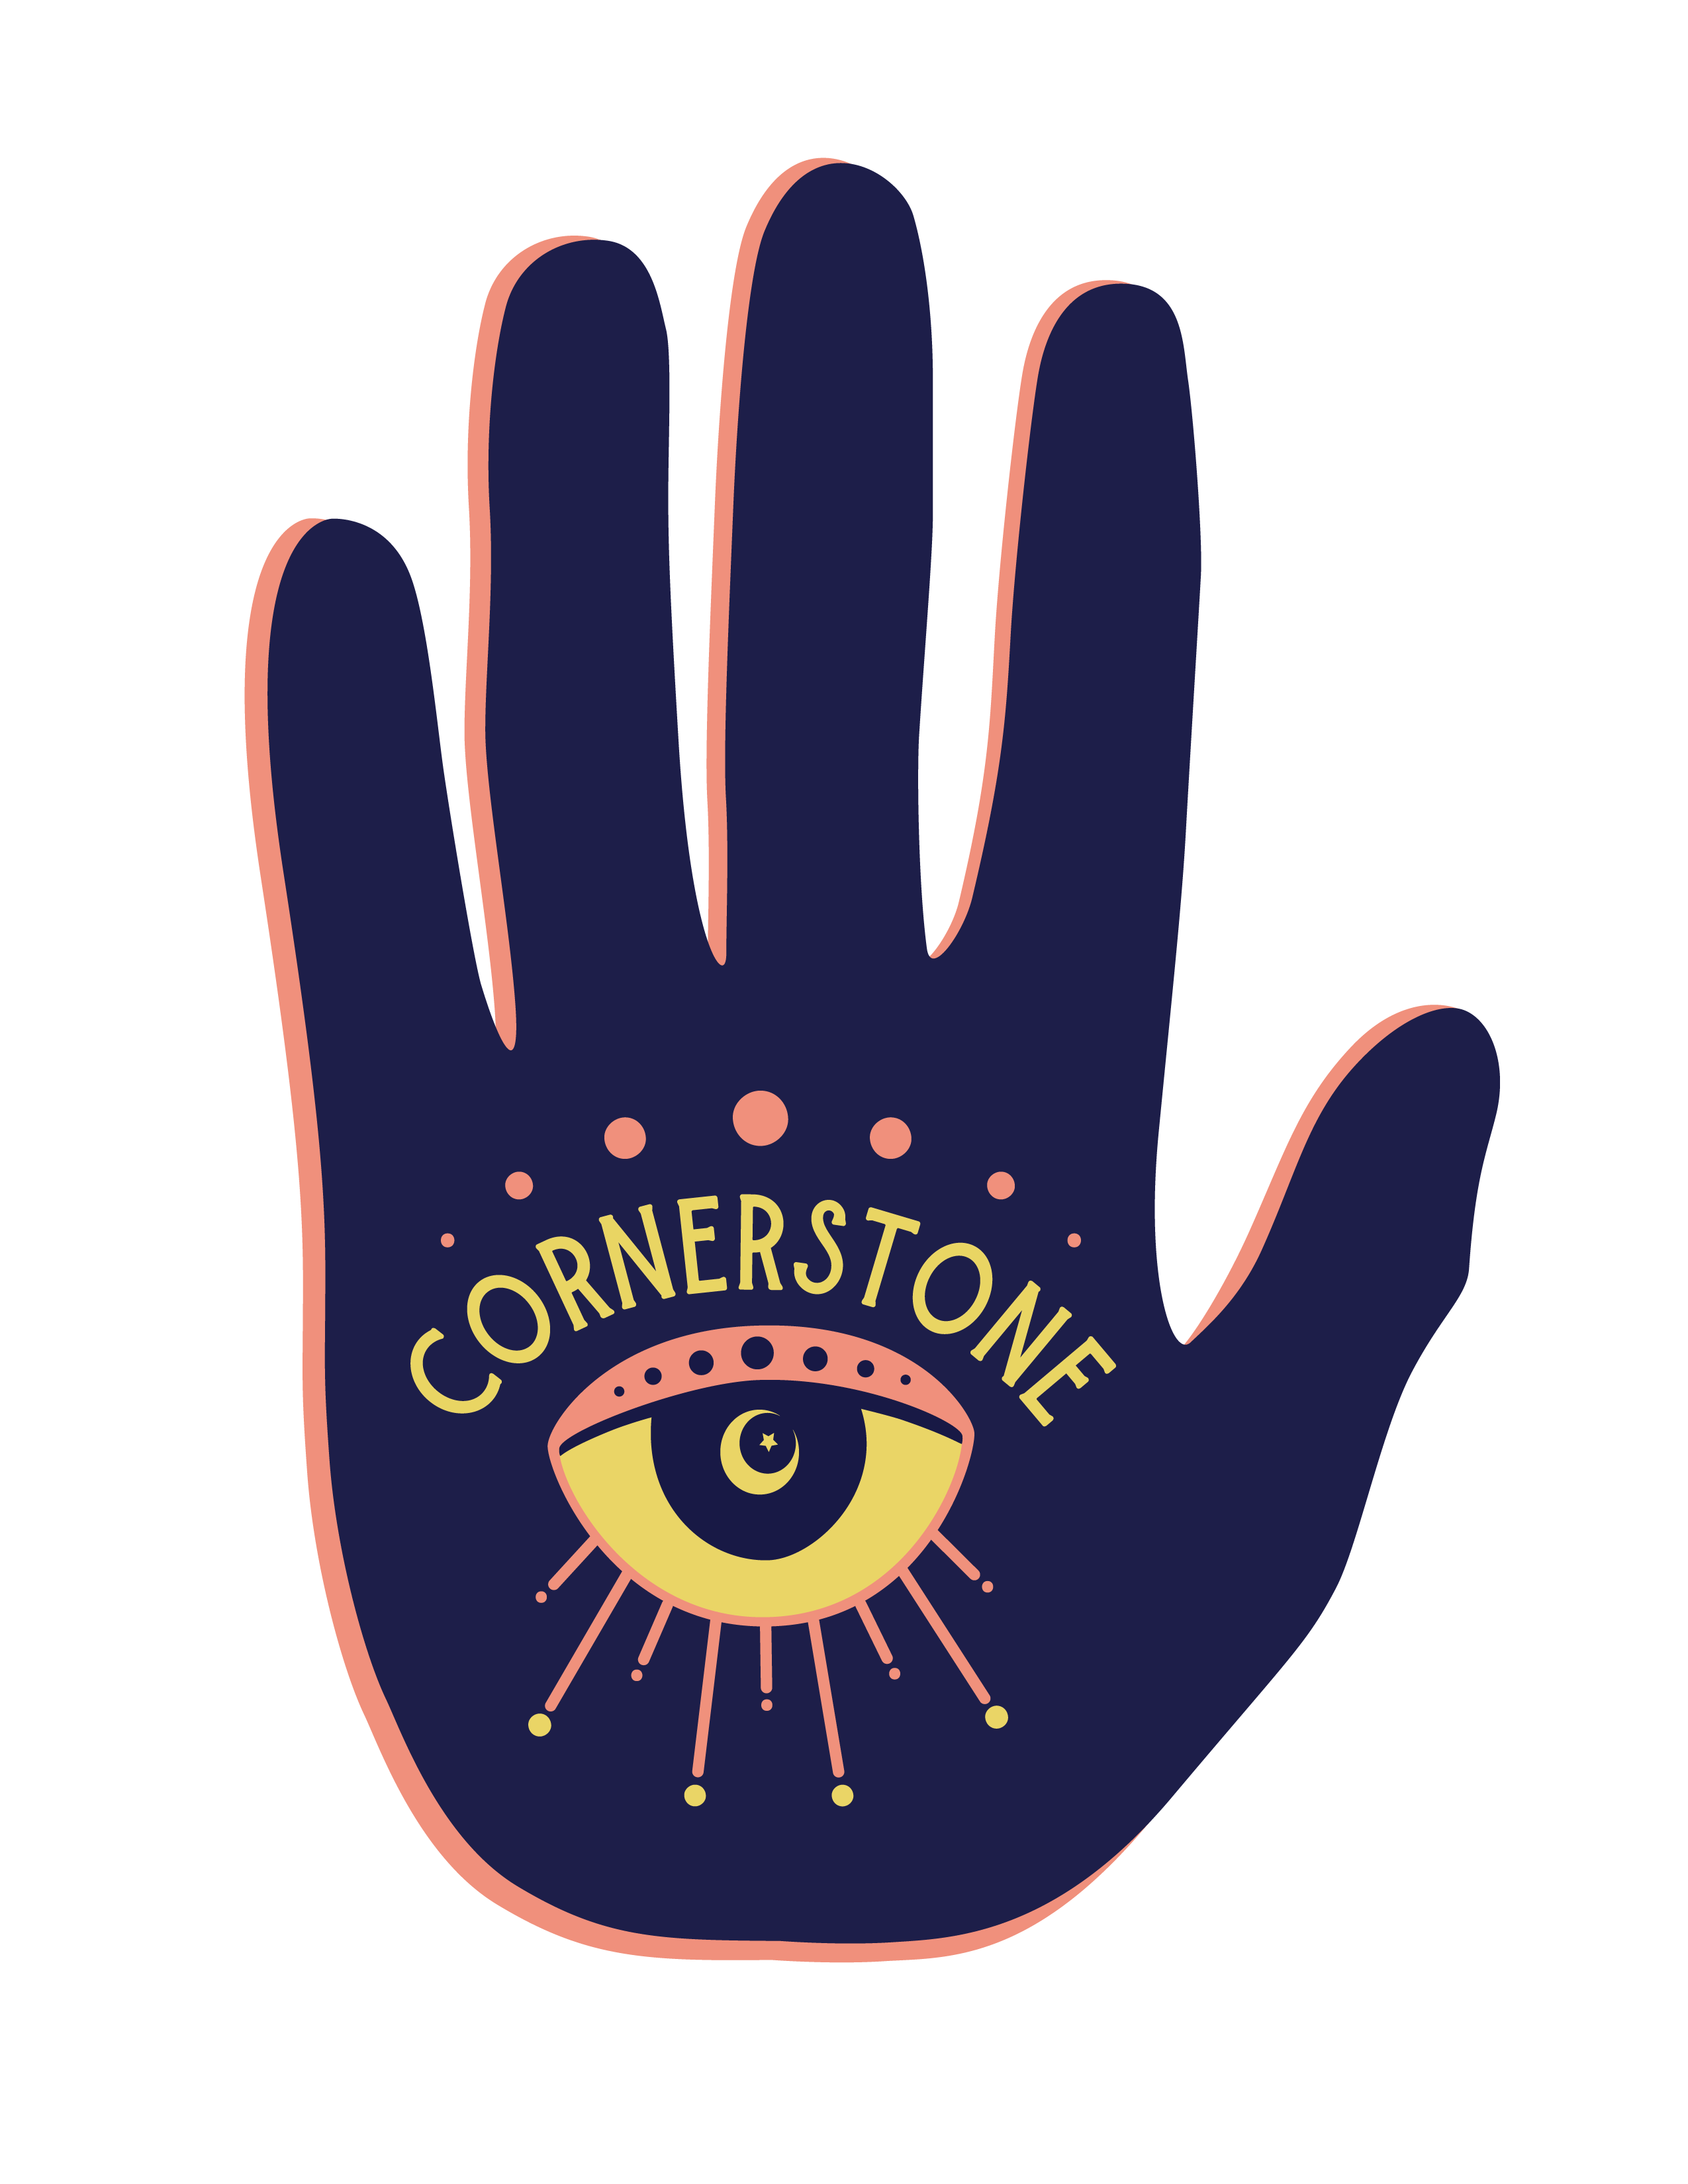 Cornerstone logo - dark blue hand with peach dots under the fingers, cornerstone in yellow with a yellow and peach eye underneath in the palm of the hand. A yellow moon and star is in the iris of the eye.